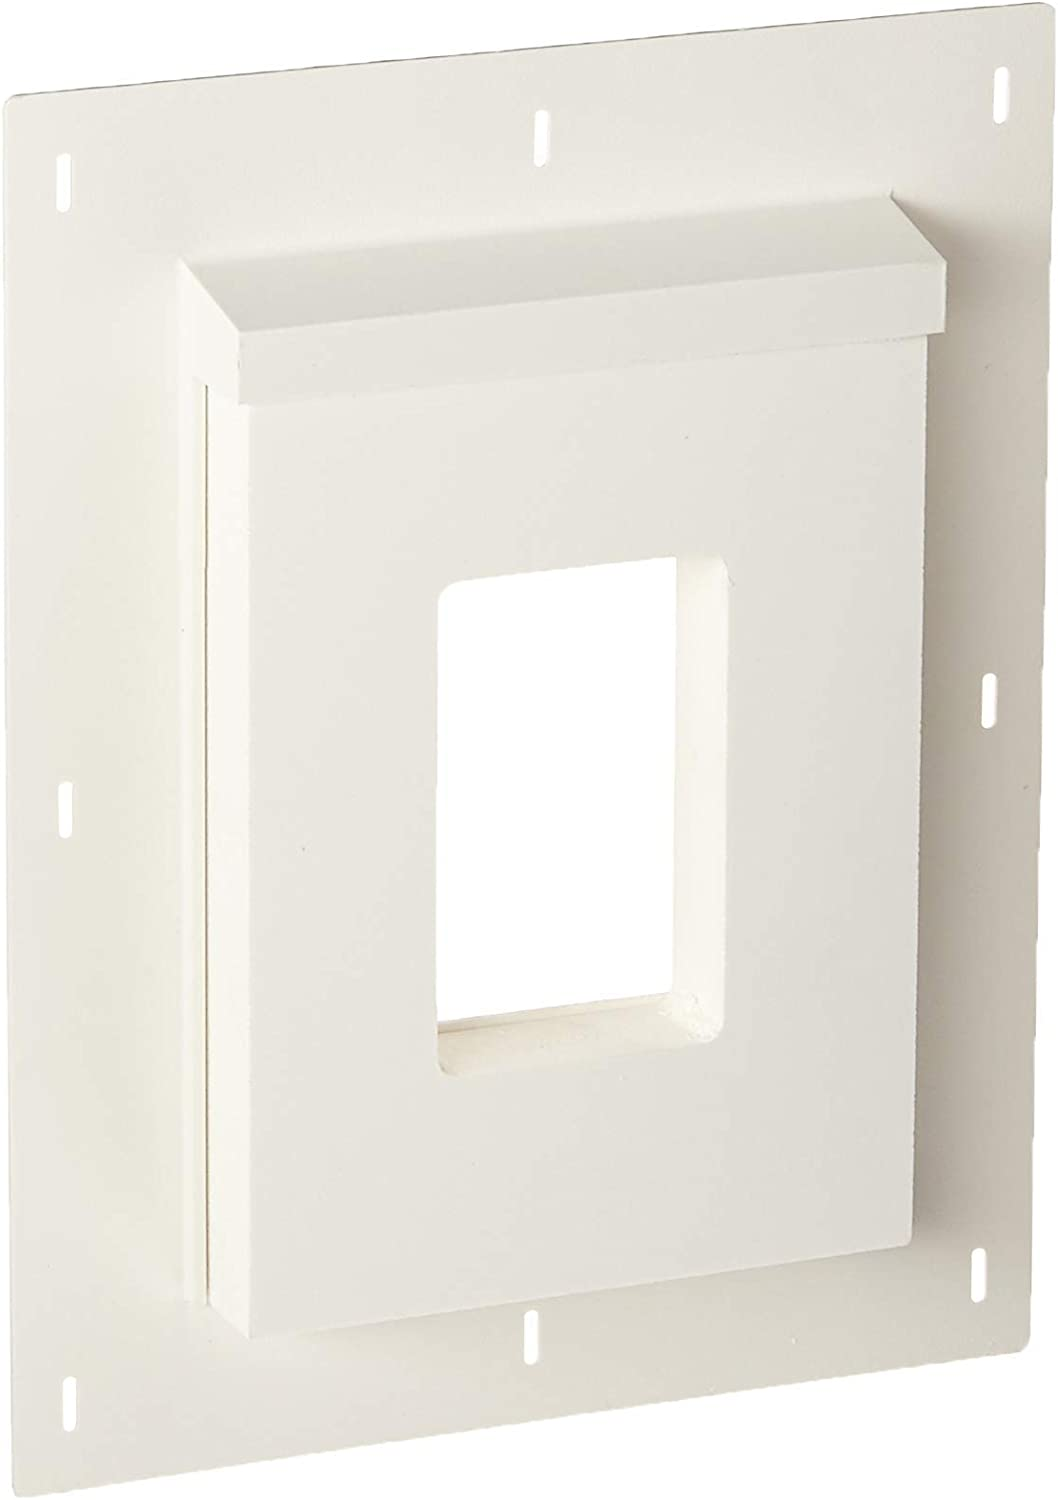 3 Outstanding Pack Builders Edge Milwaukee Mall Sturdimount Primed Receptacle Mounting Bloc